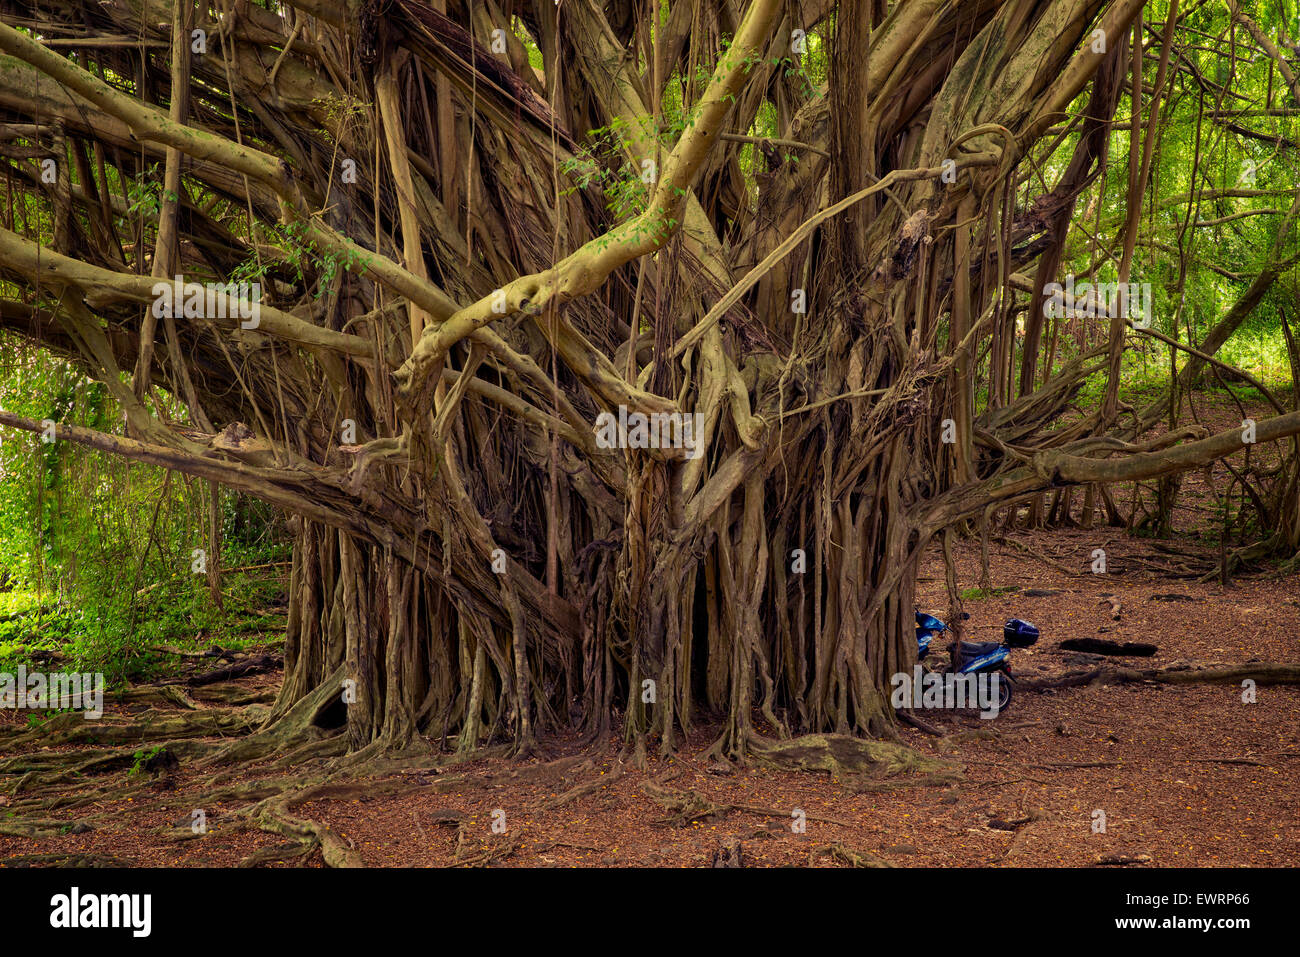 Banyon Tree. Hawaii, The Big Island. - Stock Image